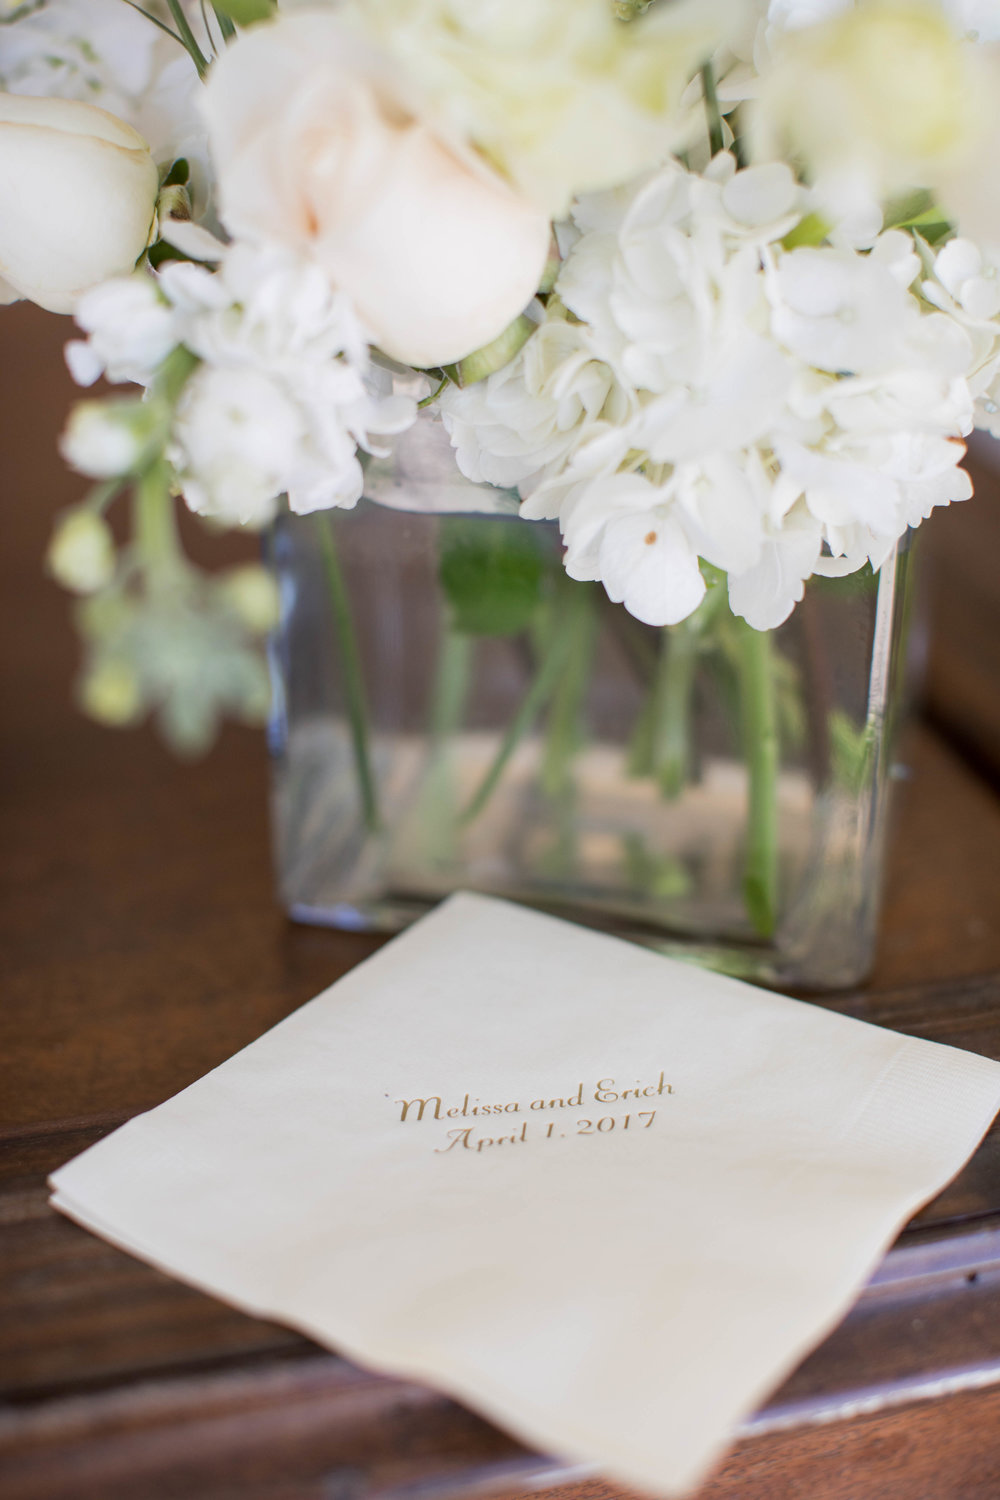 Wedding photography cocktail reception custom napkin